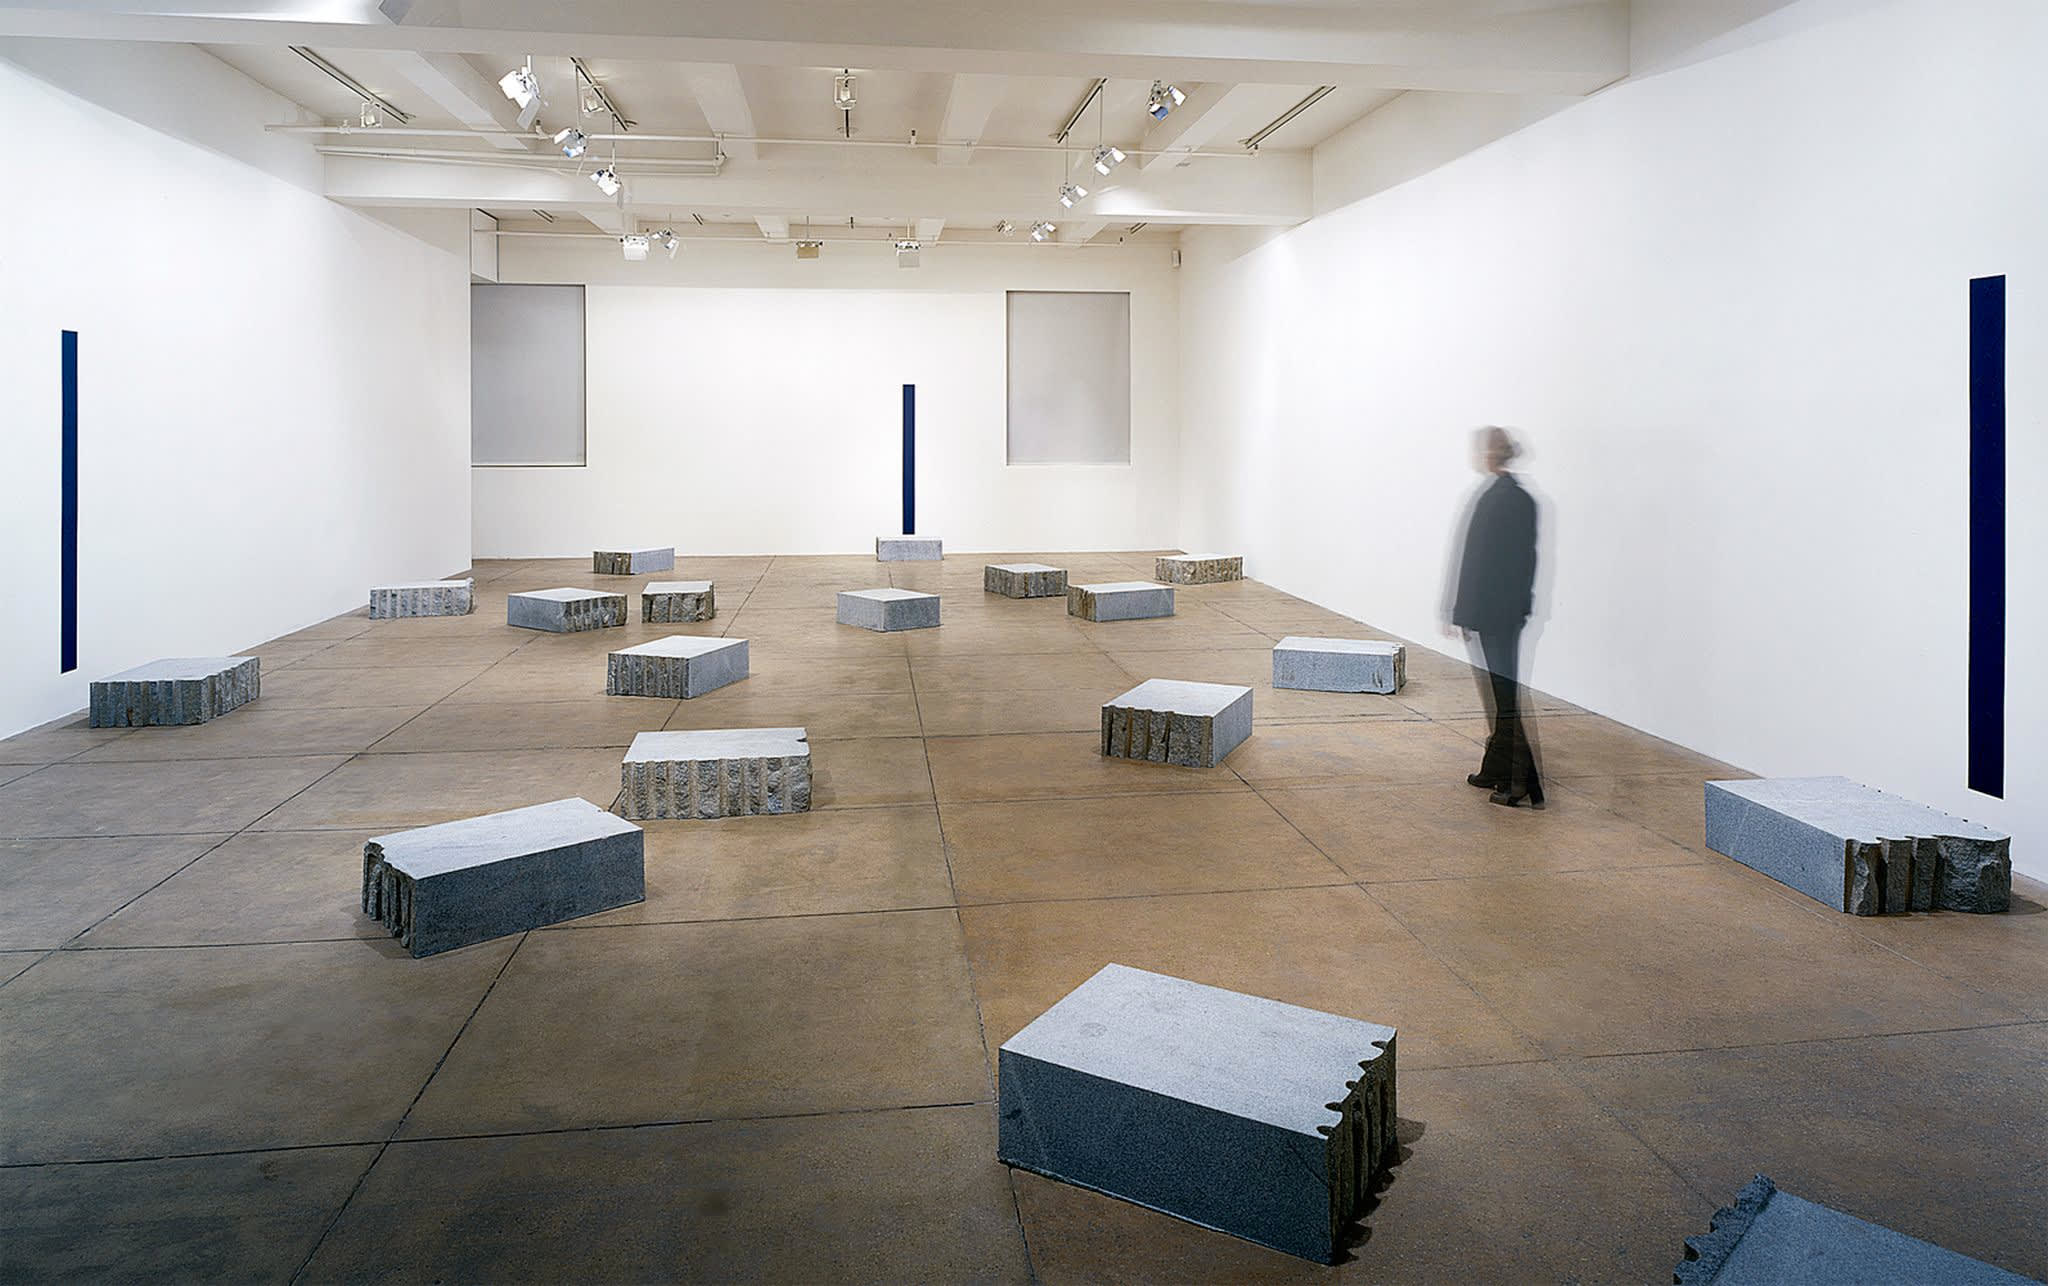 Multiple concrete slabs lay on the floor, a motion blurred figure walks among them.